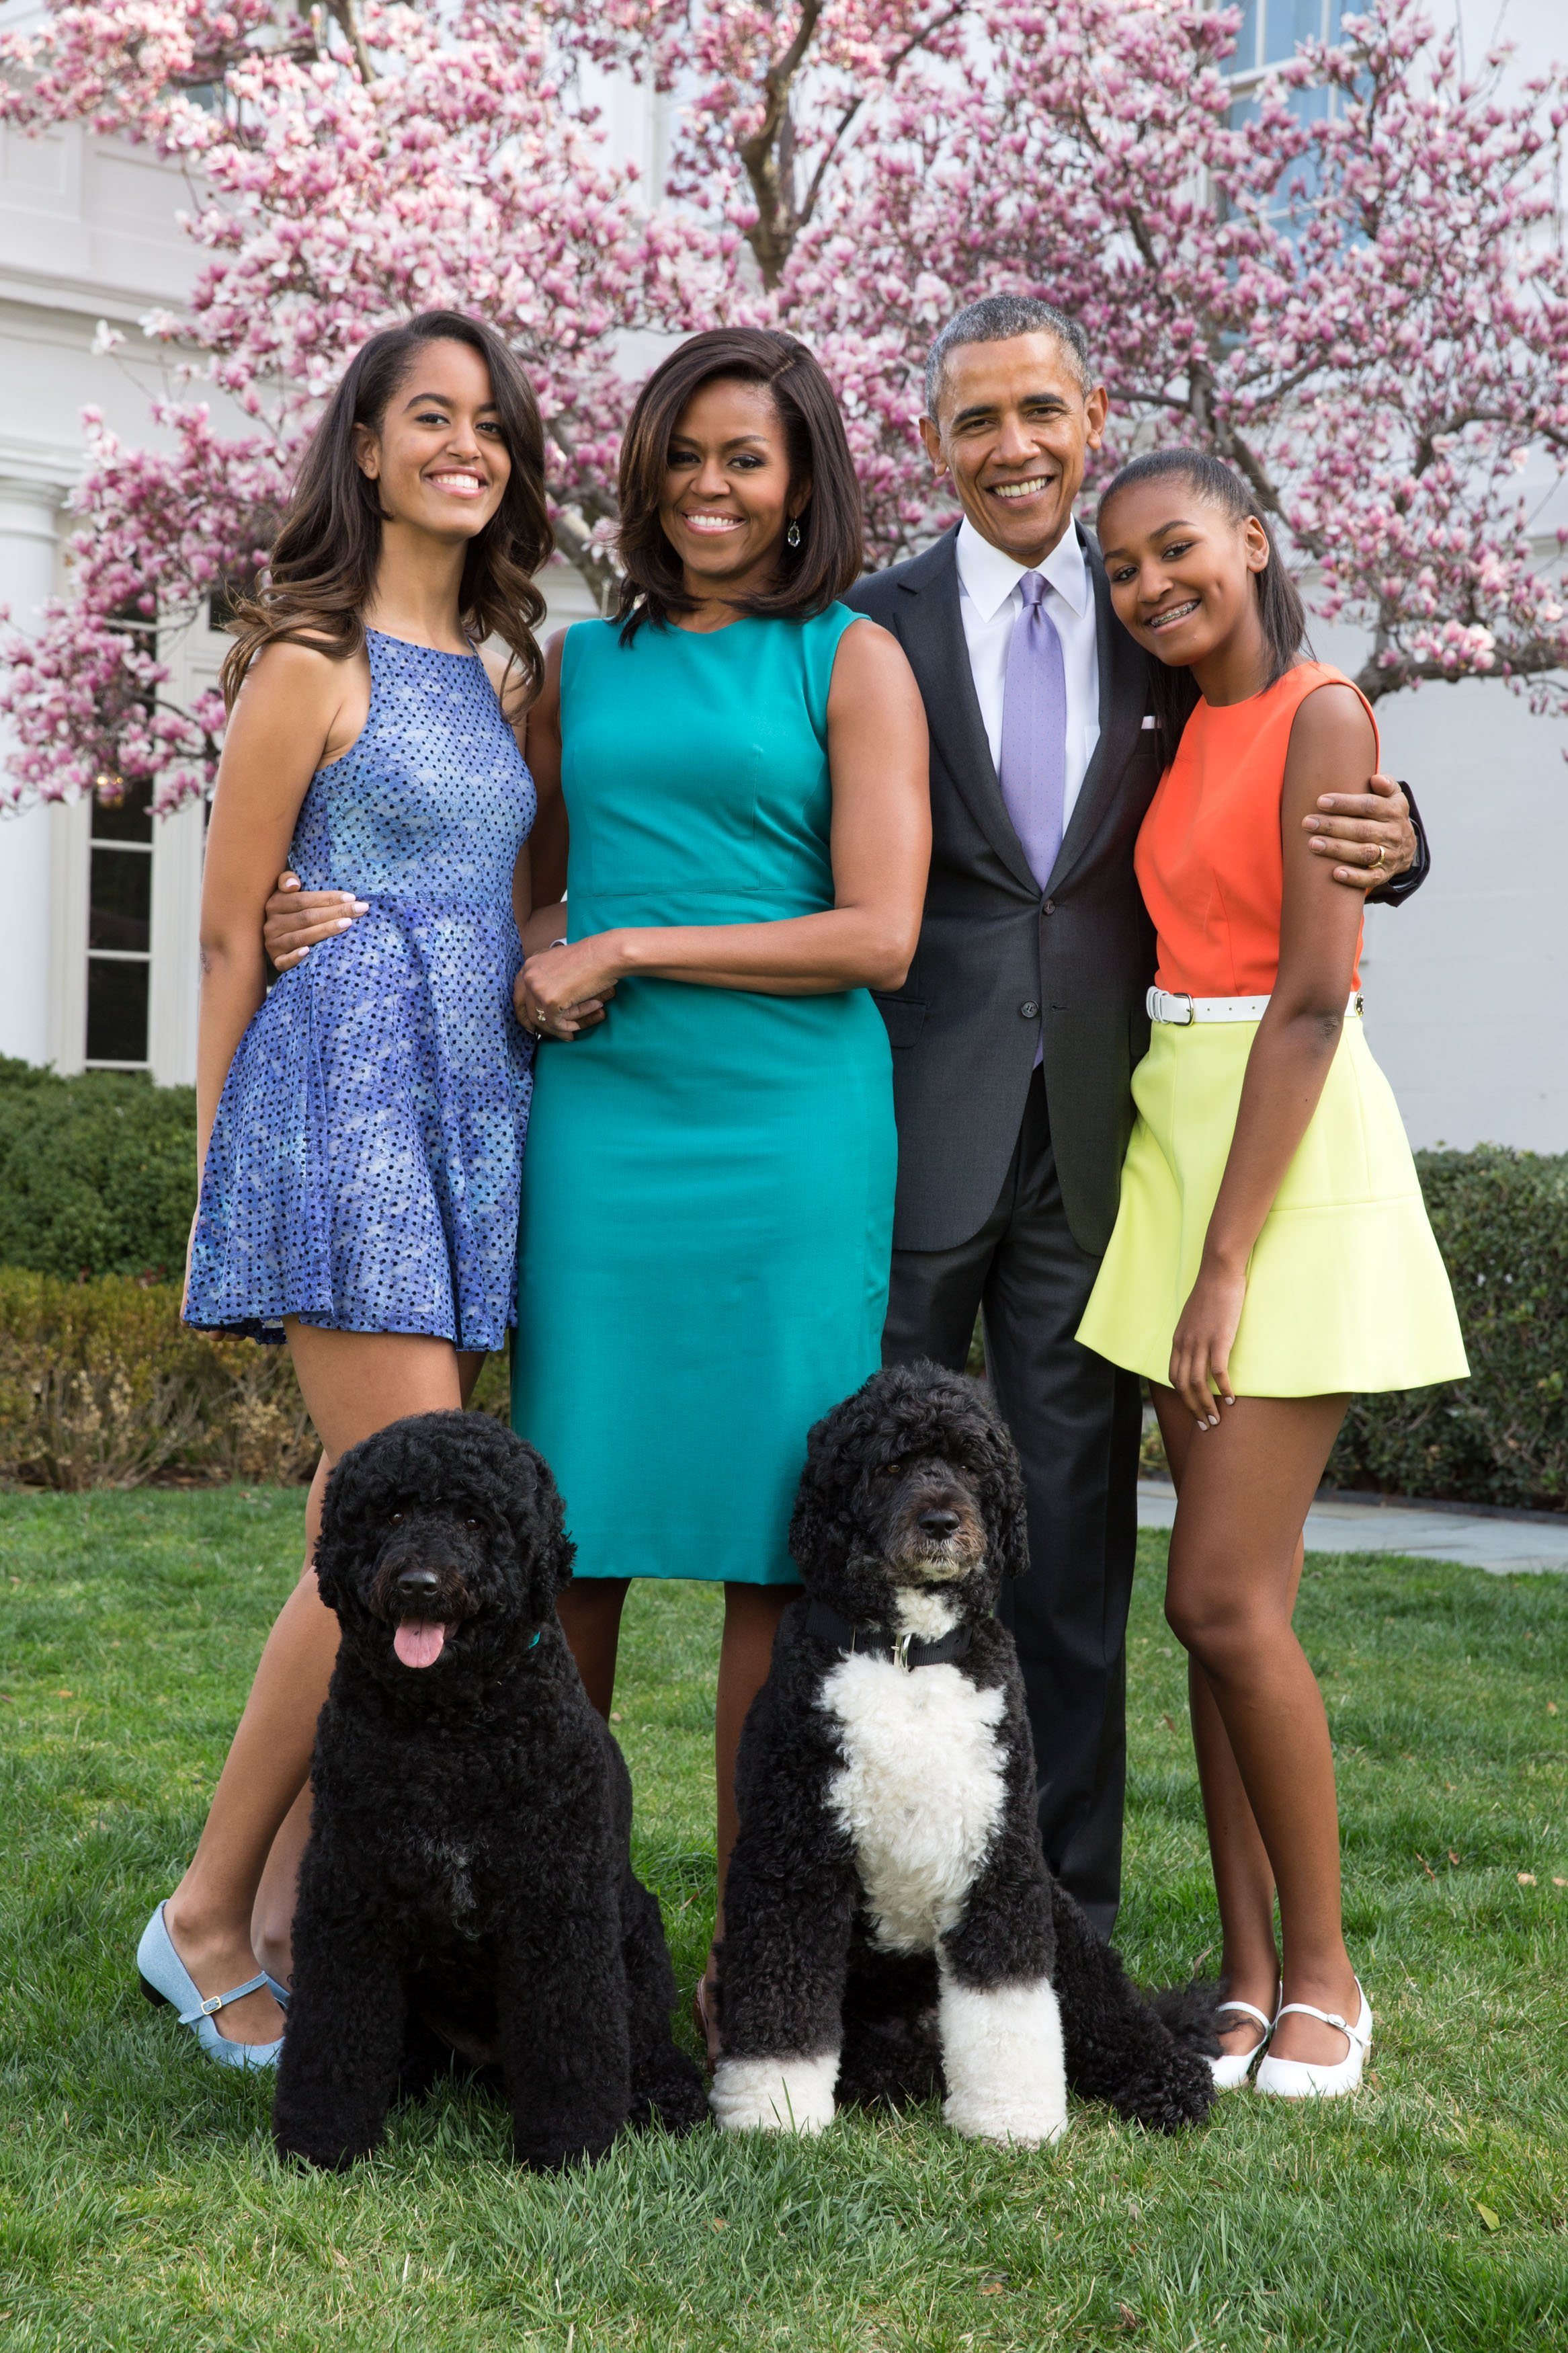 Barack Obama, Michelle, Malia & Sasha pose for a family portrait with their pets Bo and Sunny at the White House on April 5, 2015 in Washington, DC. | Photo: Getty Images.